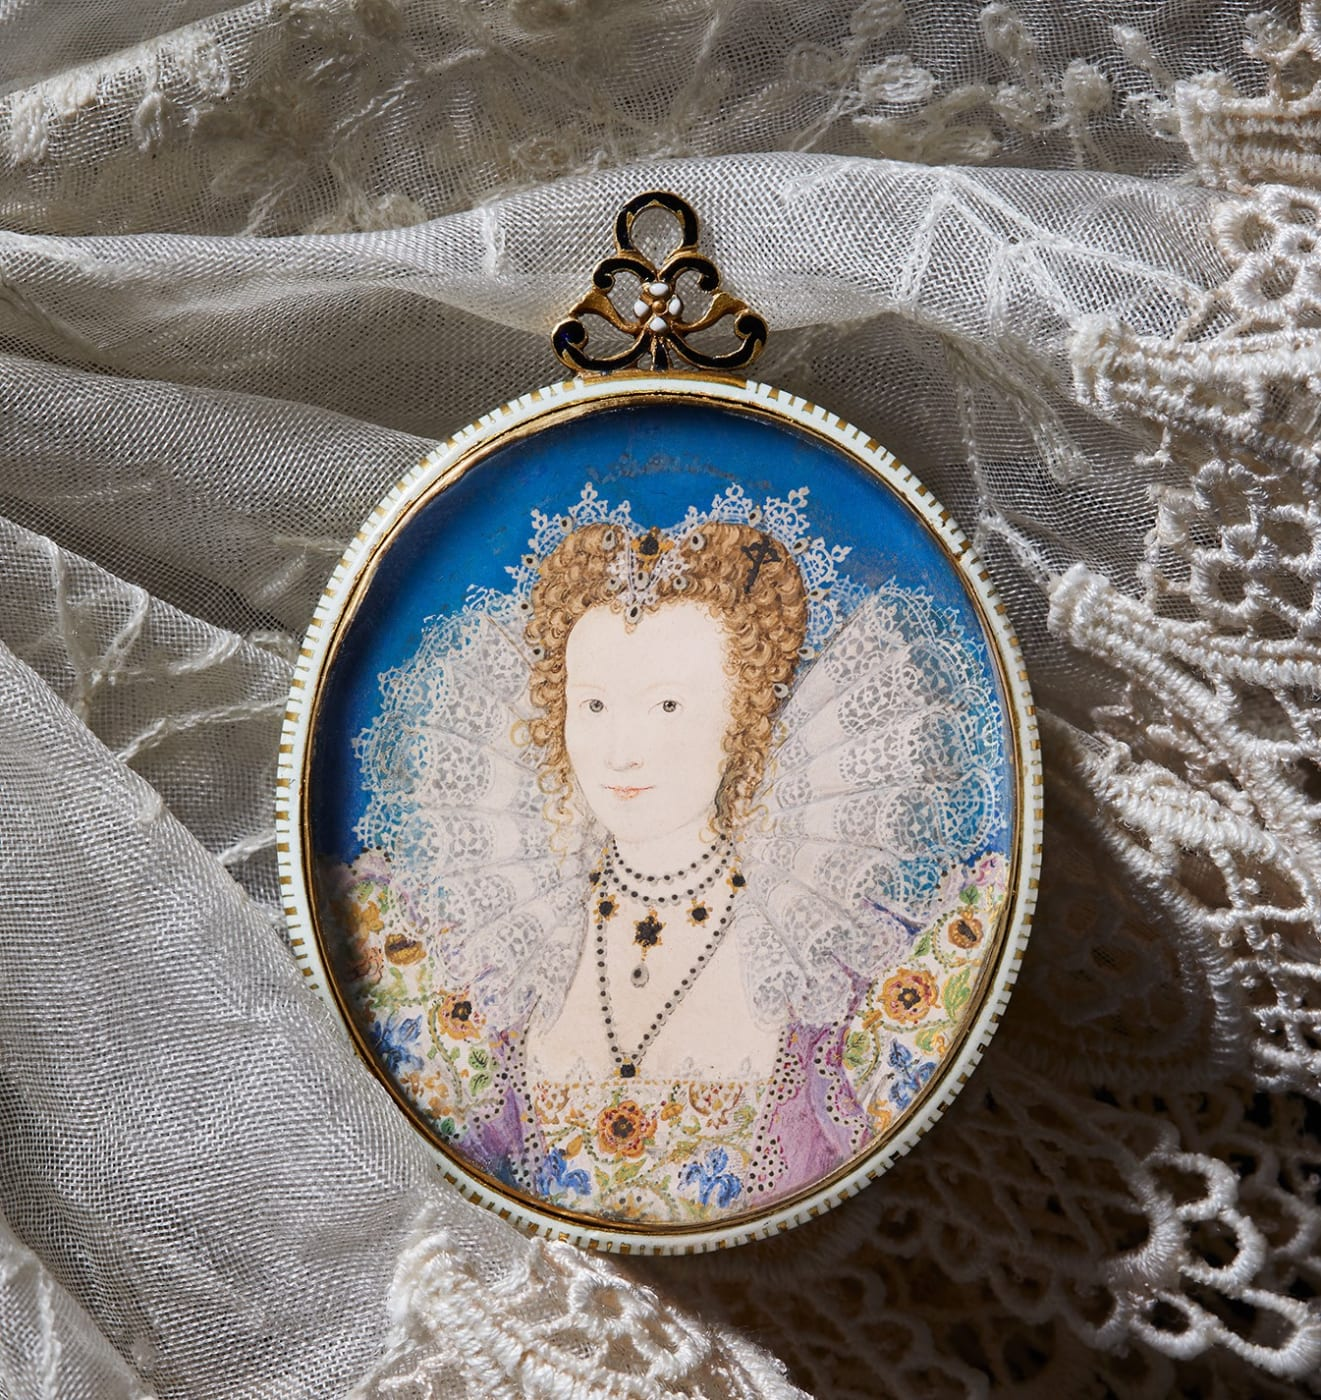 A portrait miniature of a Tudor Lady in Court. She wears a large lace ruff, with a floral dress against a bright blue backgound This artwork by Nicholas Hilliard has sold.